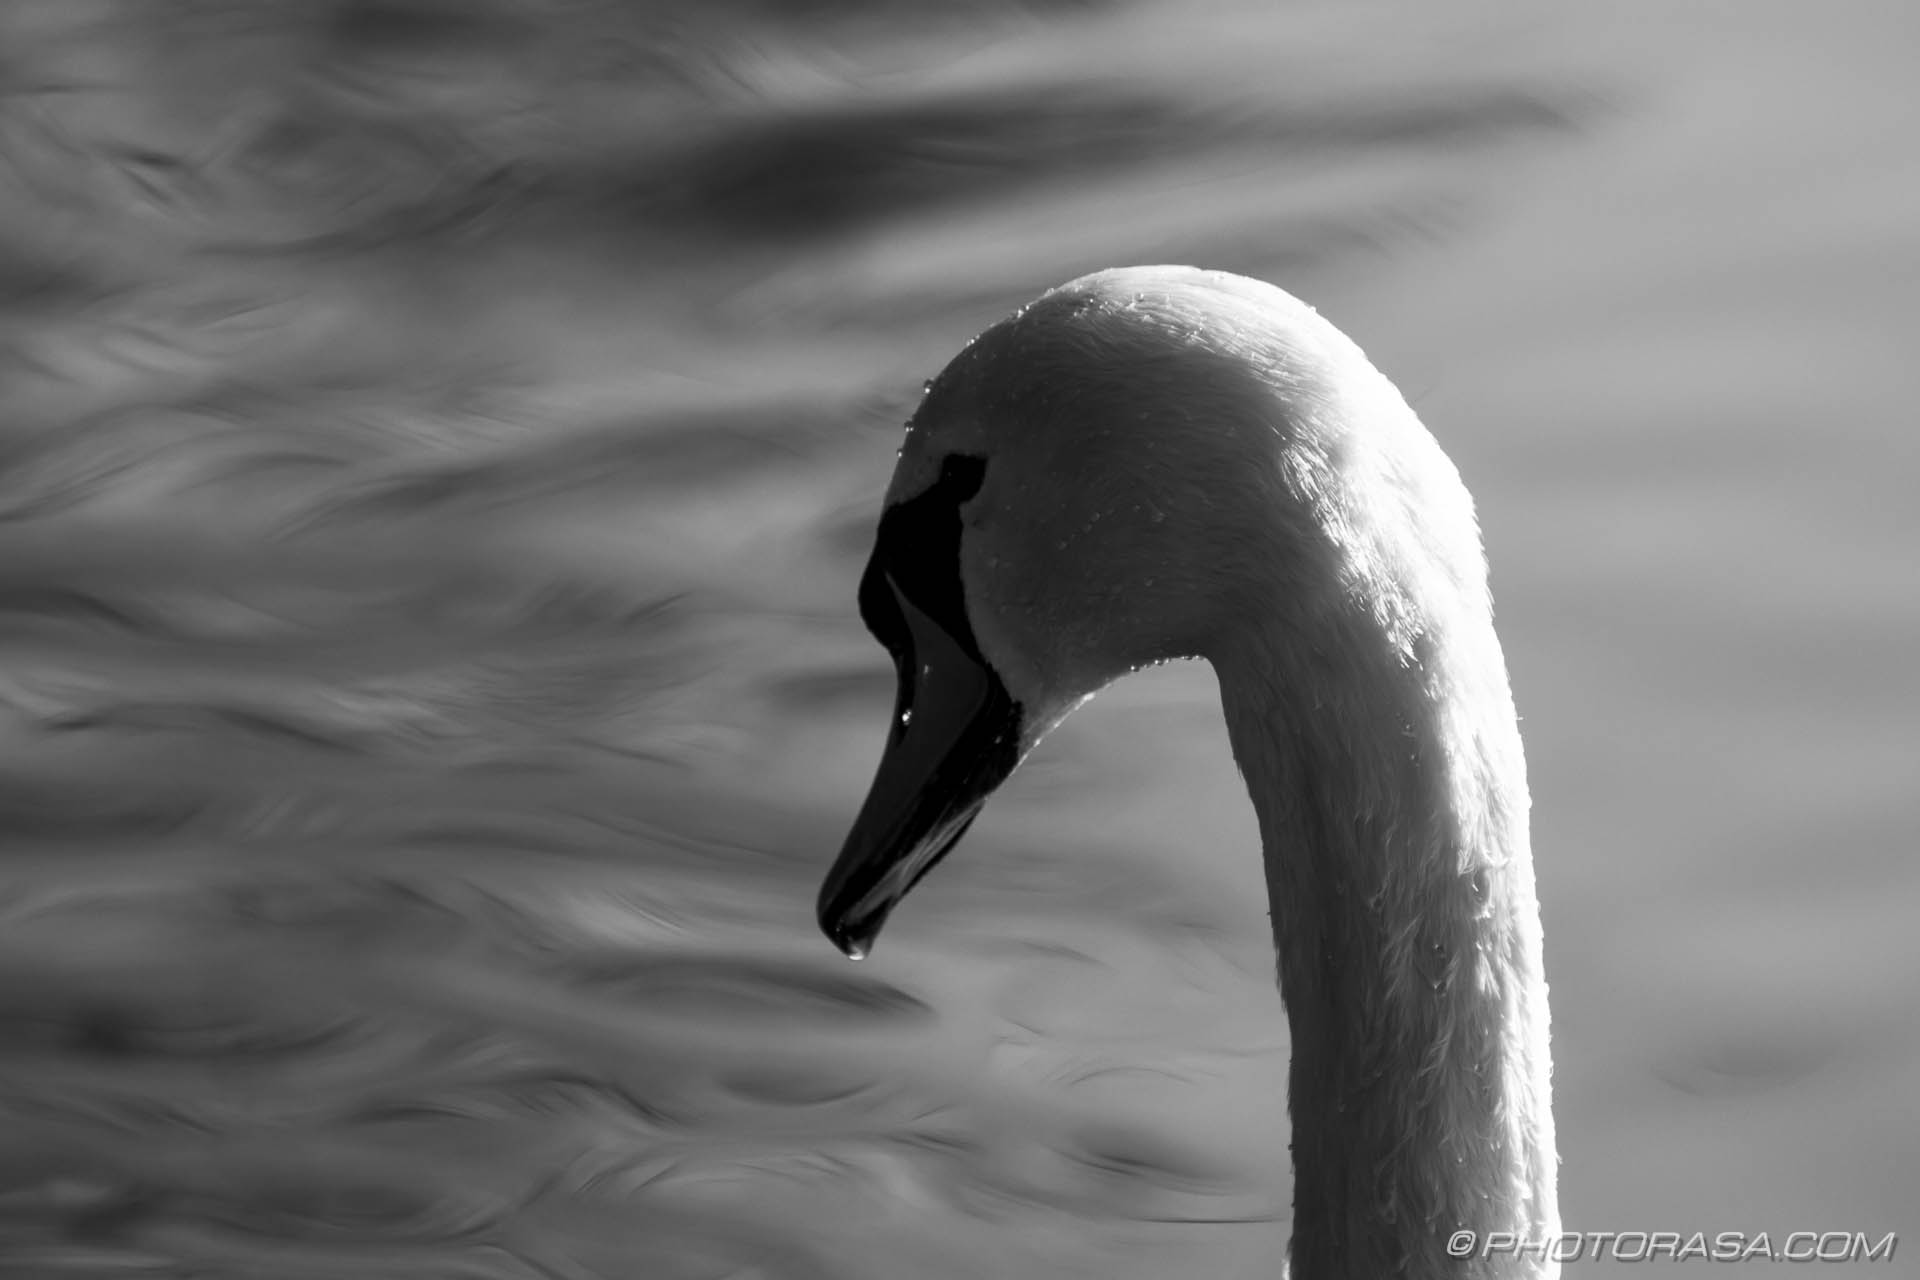 http://photorasa.com/art-swans/swan-and-water-ripples/